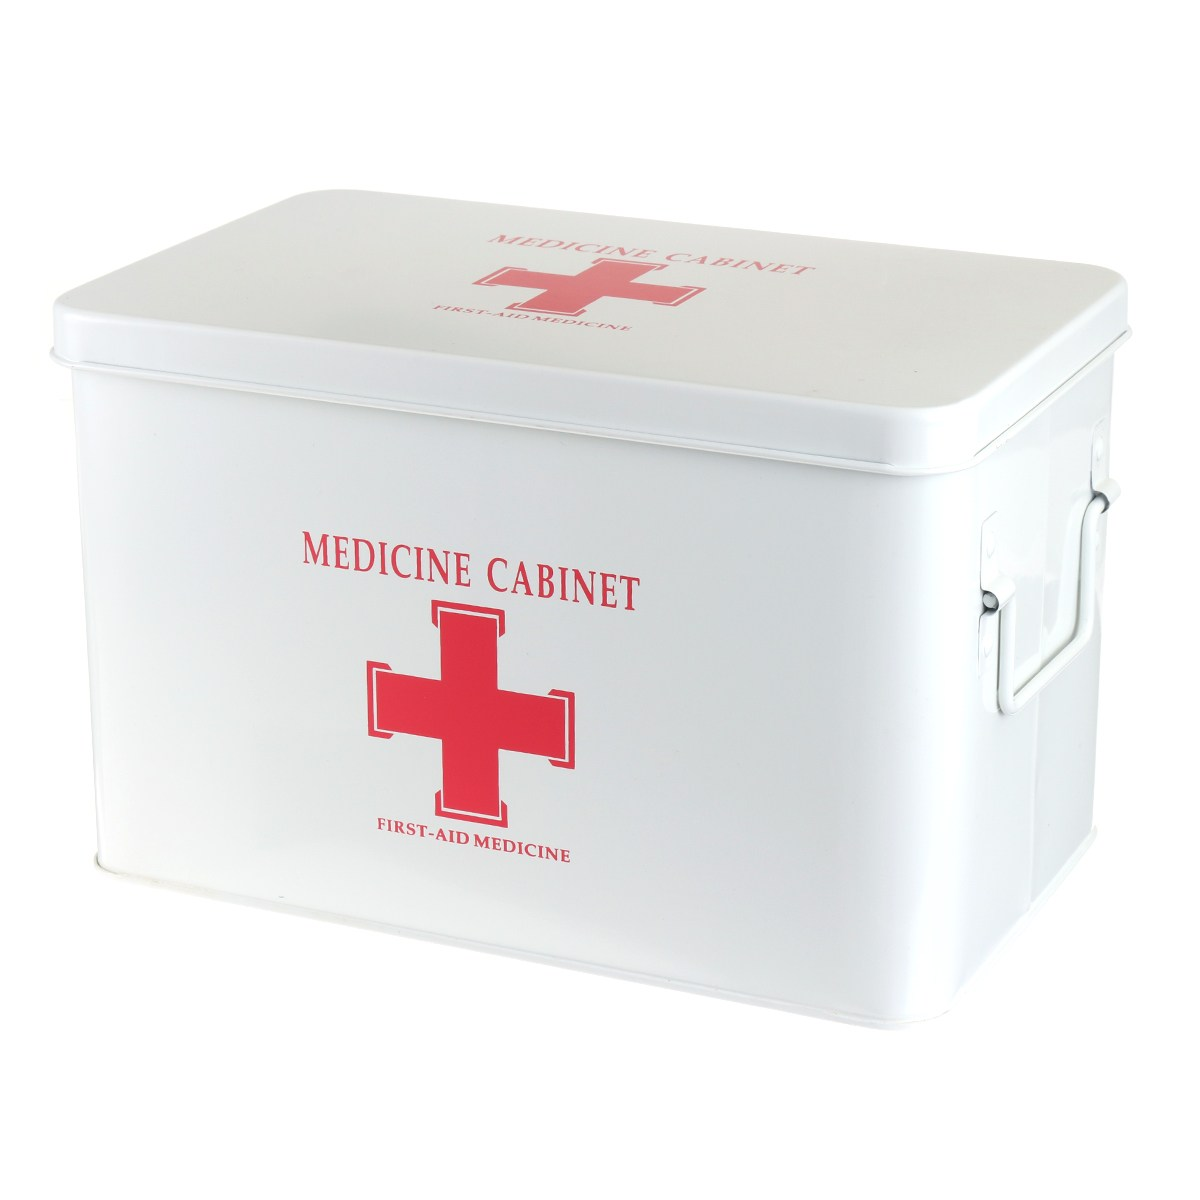 Superieur NEW Metal Medicine Cabinet Multi Layered Family Box First Aid Storage Box  Storage Medical Gathering Emergency Kits In Emergency Kits From Security ...